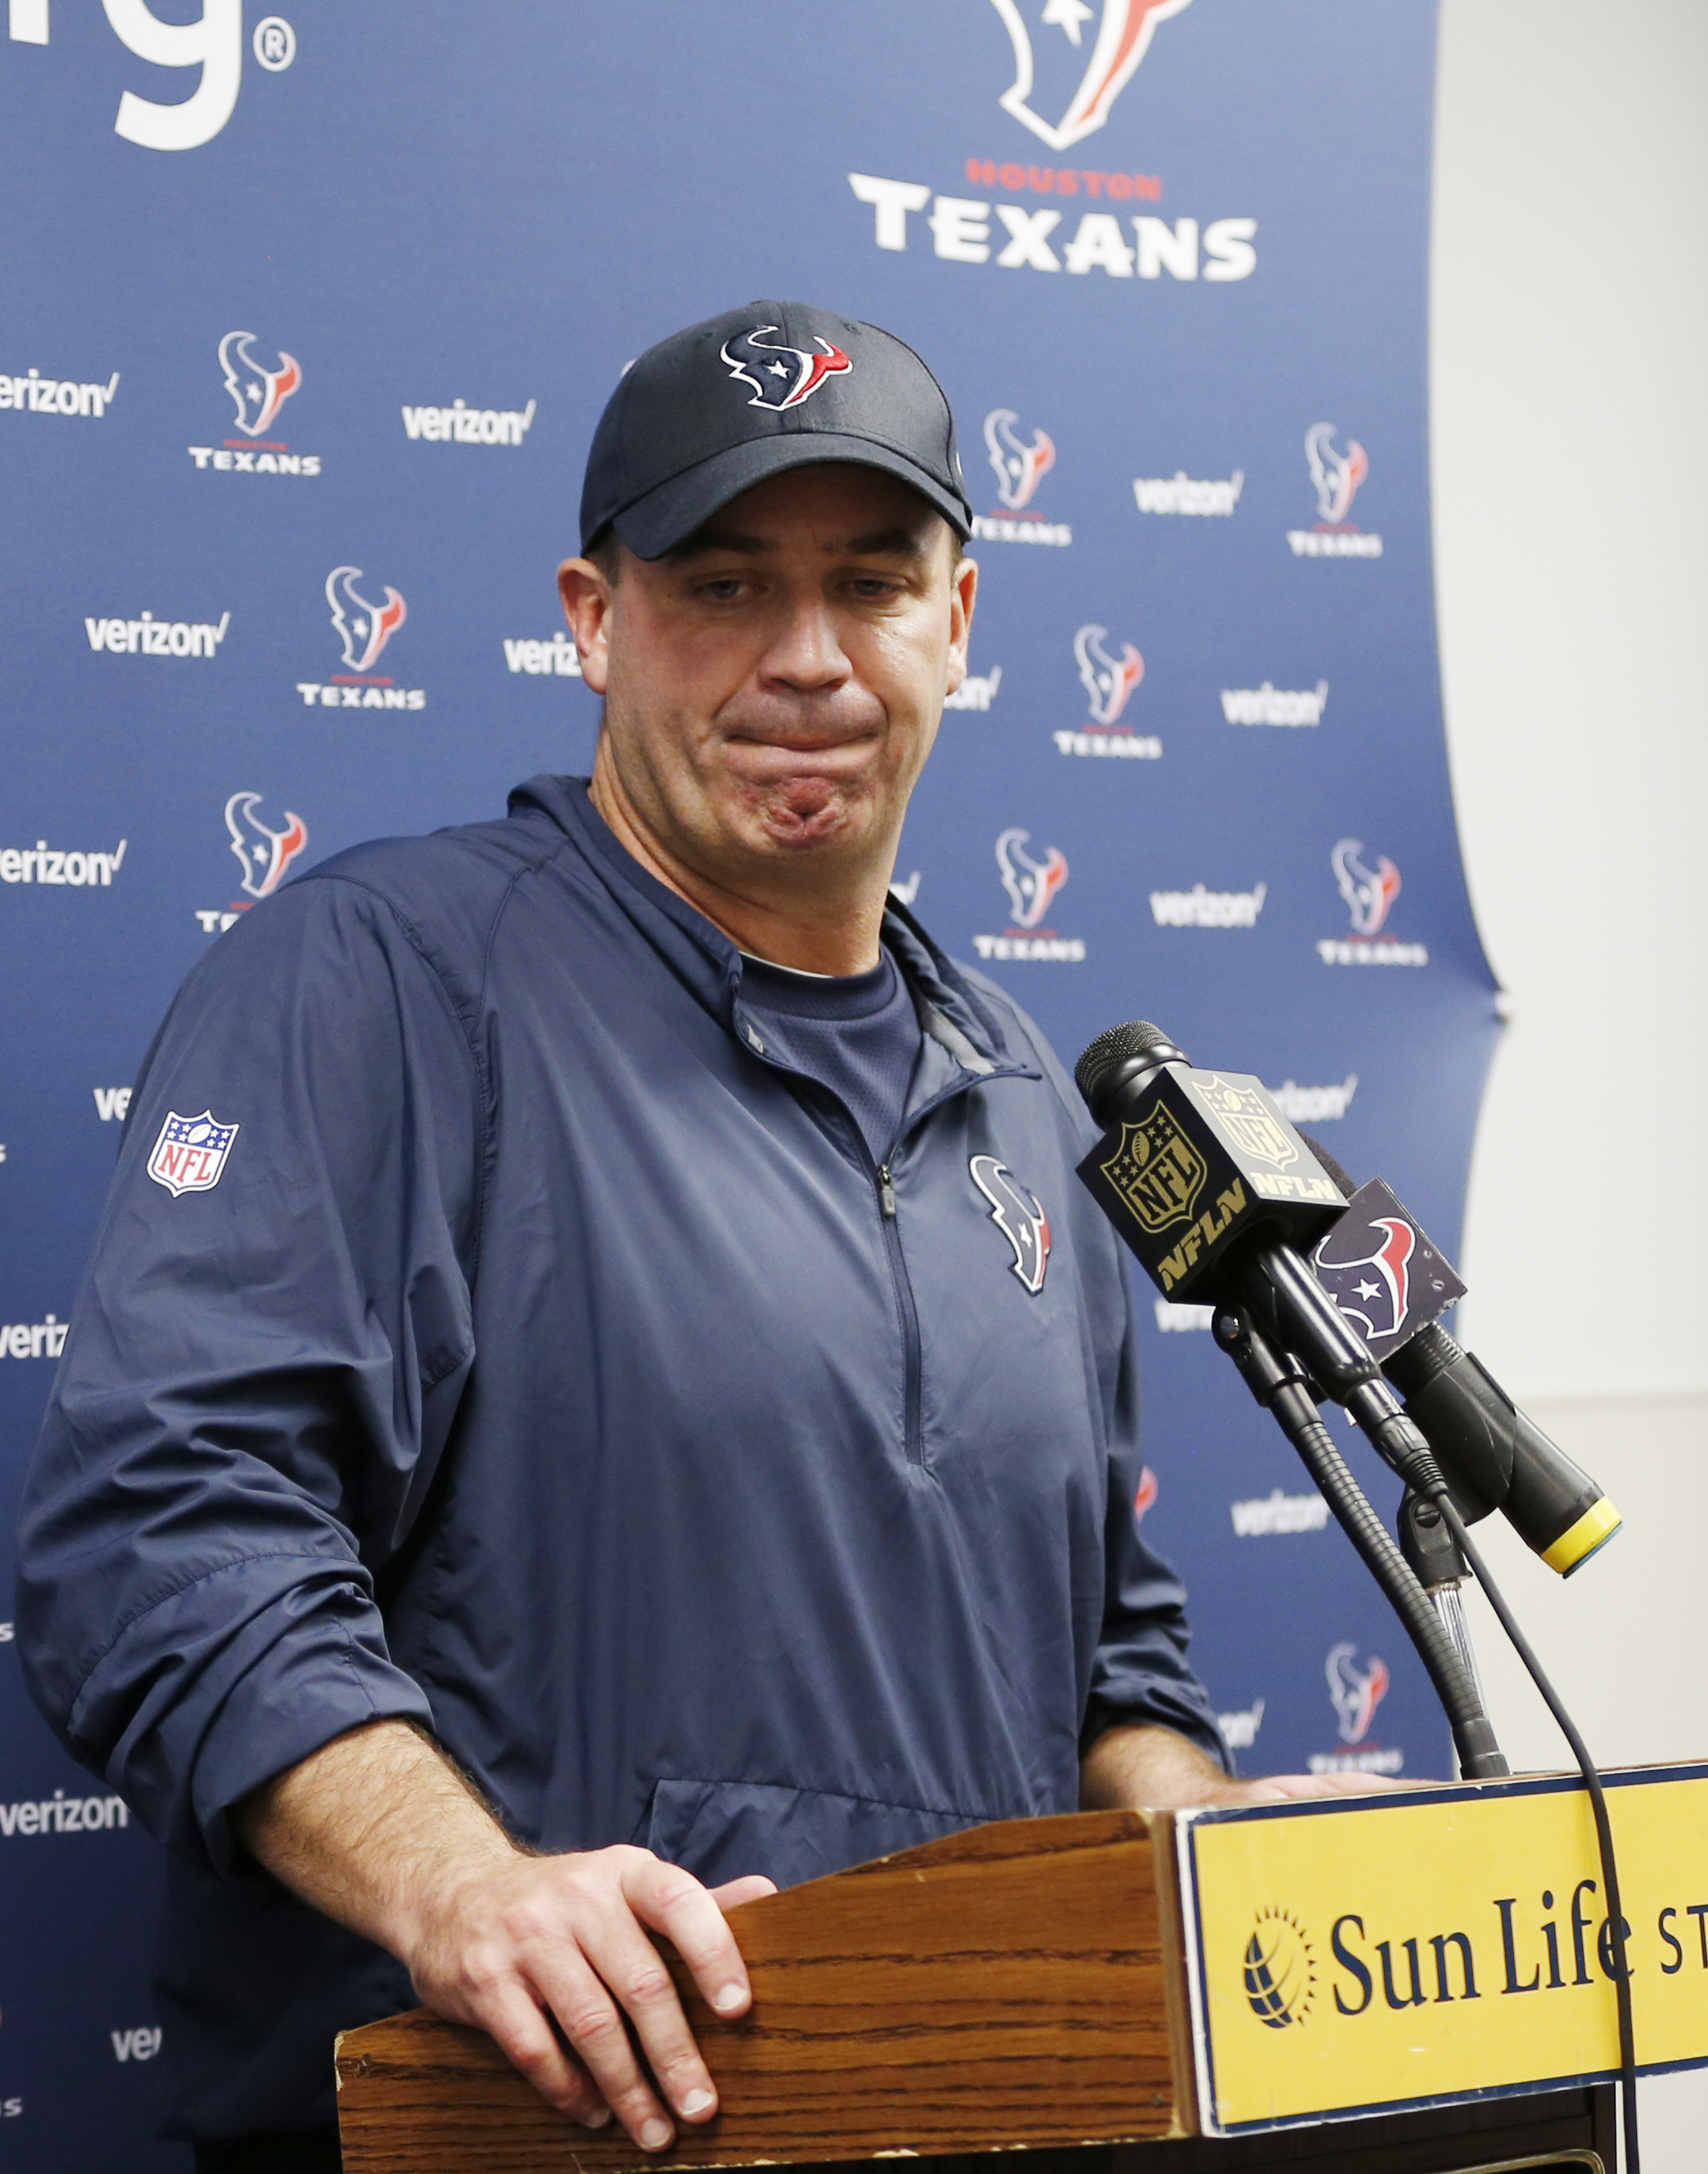 Houston Texans head coach Bill O'Brien reacts during the post-game news conference of an NFL football game against the Miami Dolphins, Sunday, Oct. 25, 2015 in Miami Gardens, Fla. The Dolphins defeated the Texans 44-26. (AP Photo/Joel Auerbach)